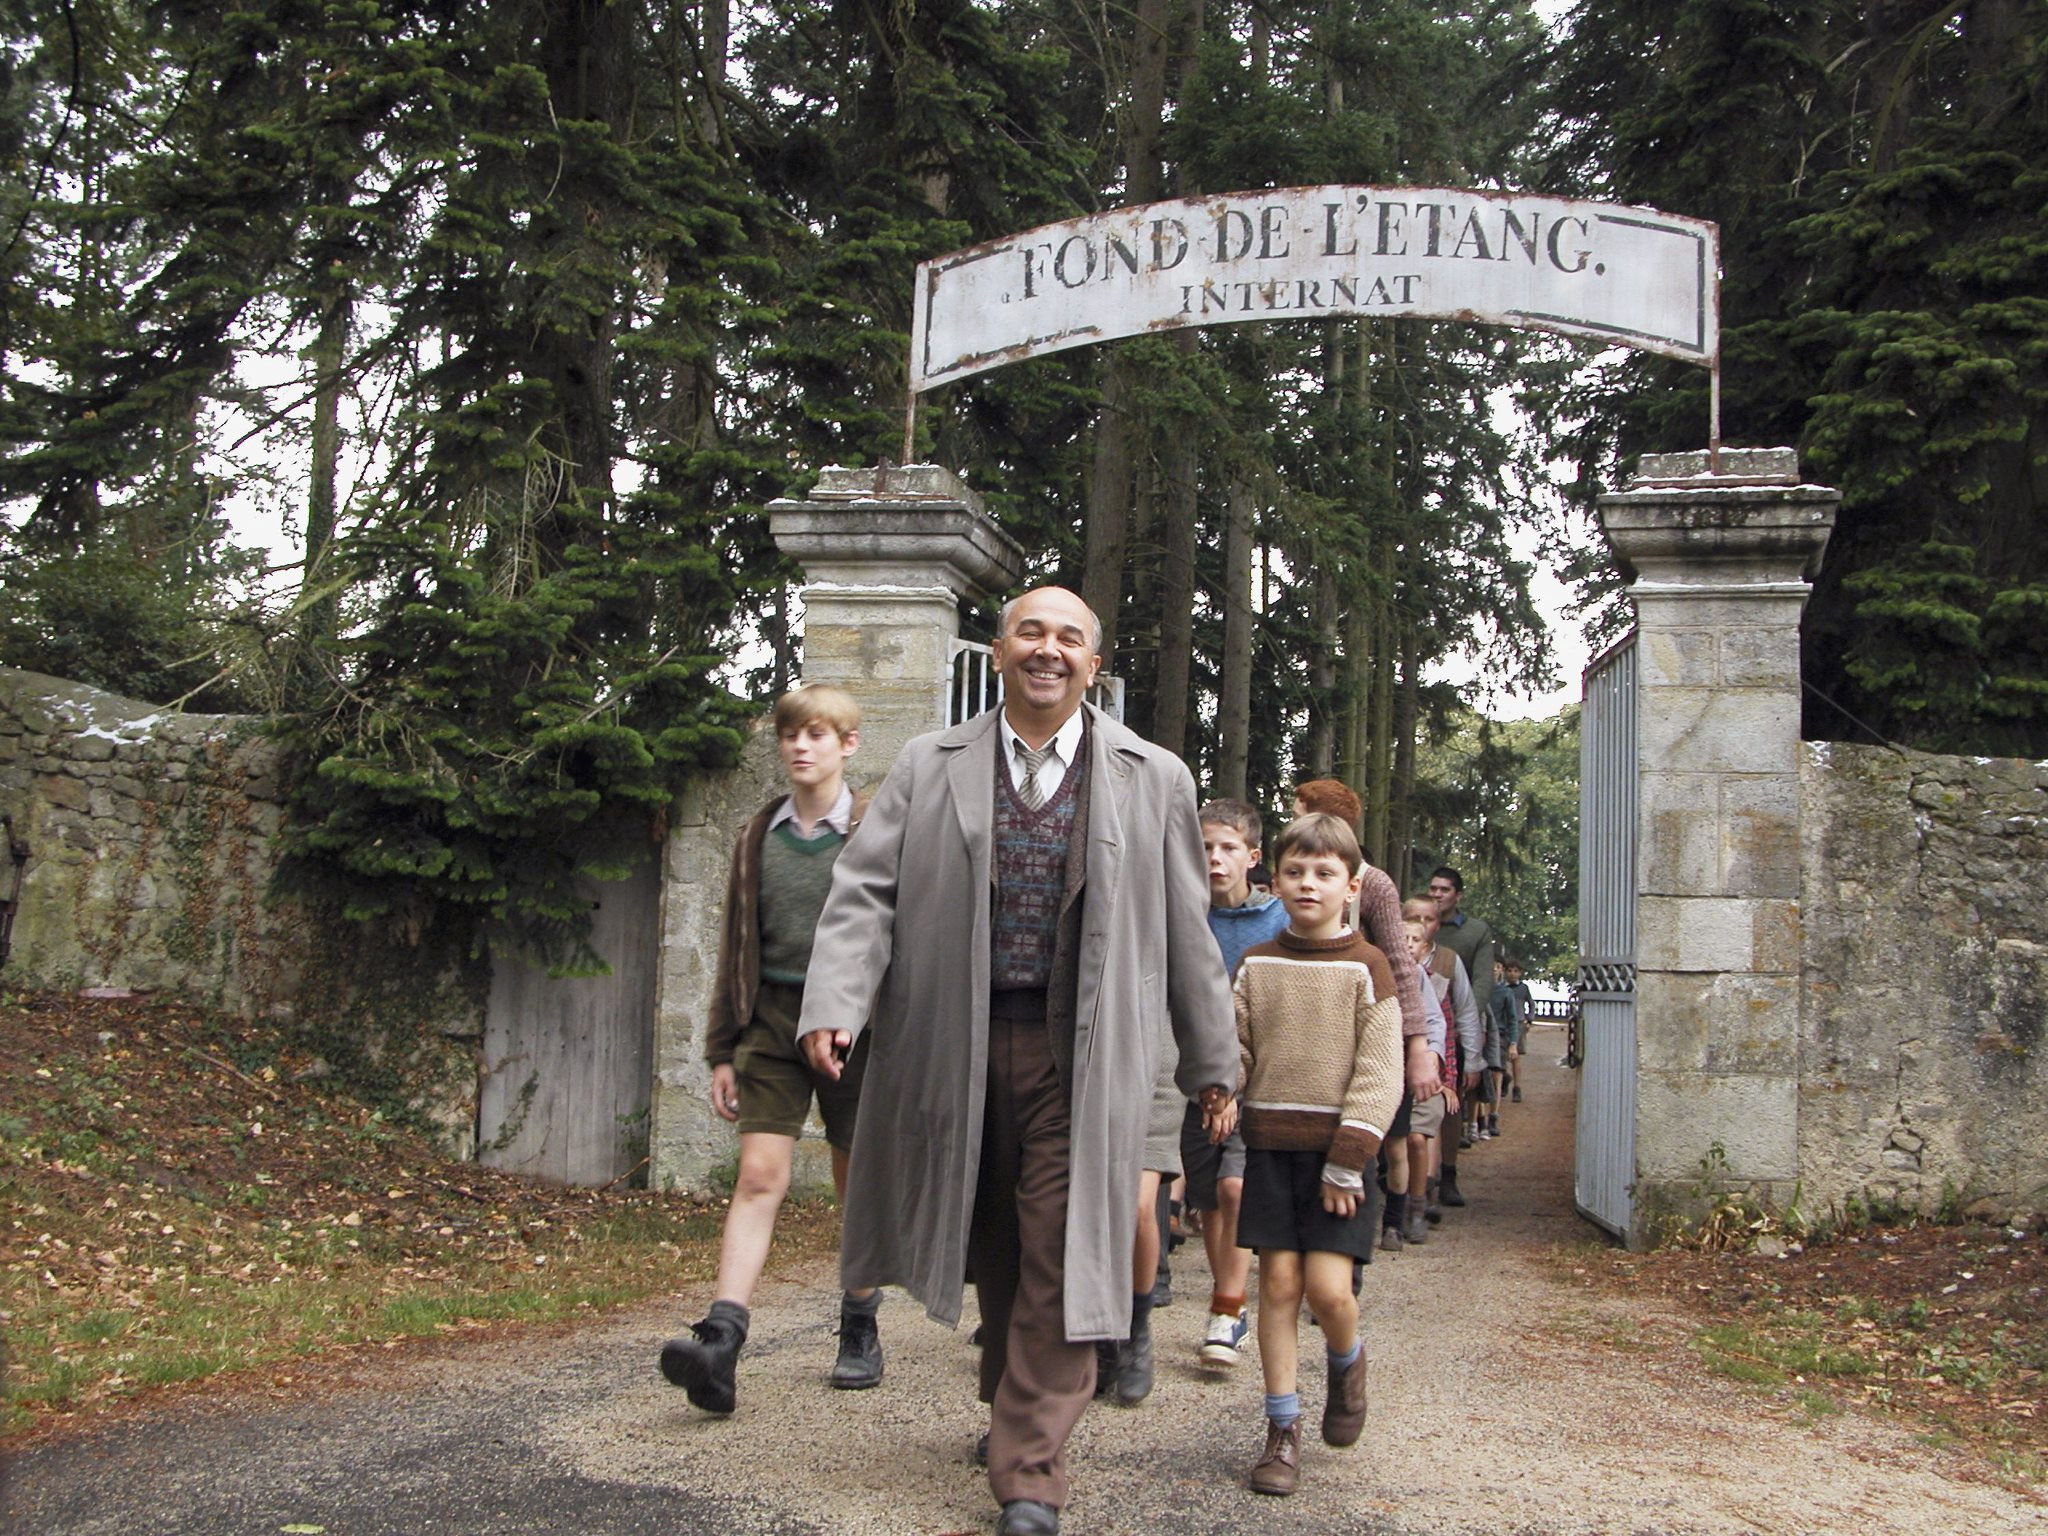 Music from the film Les Choristes